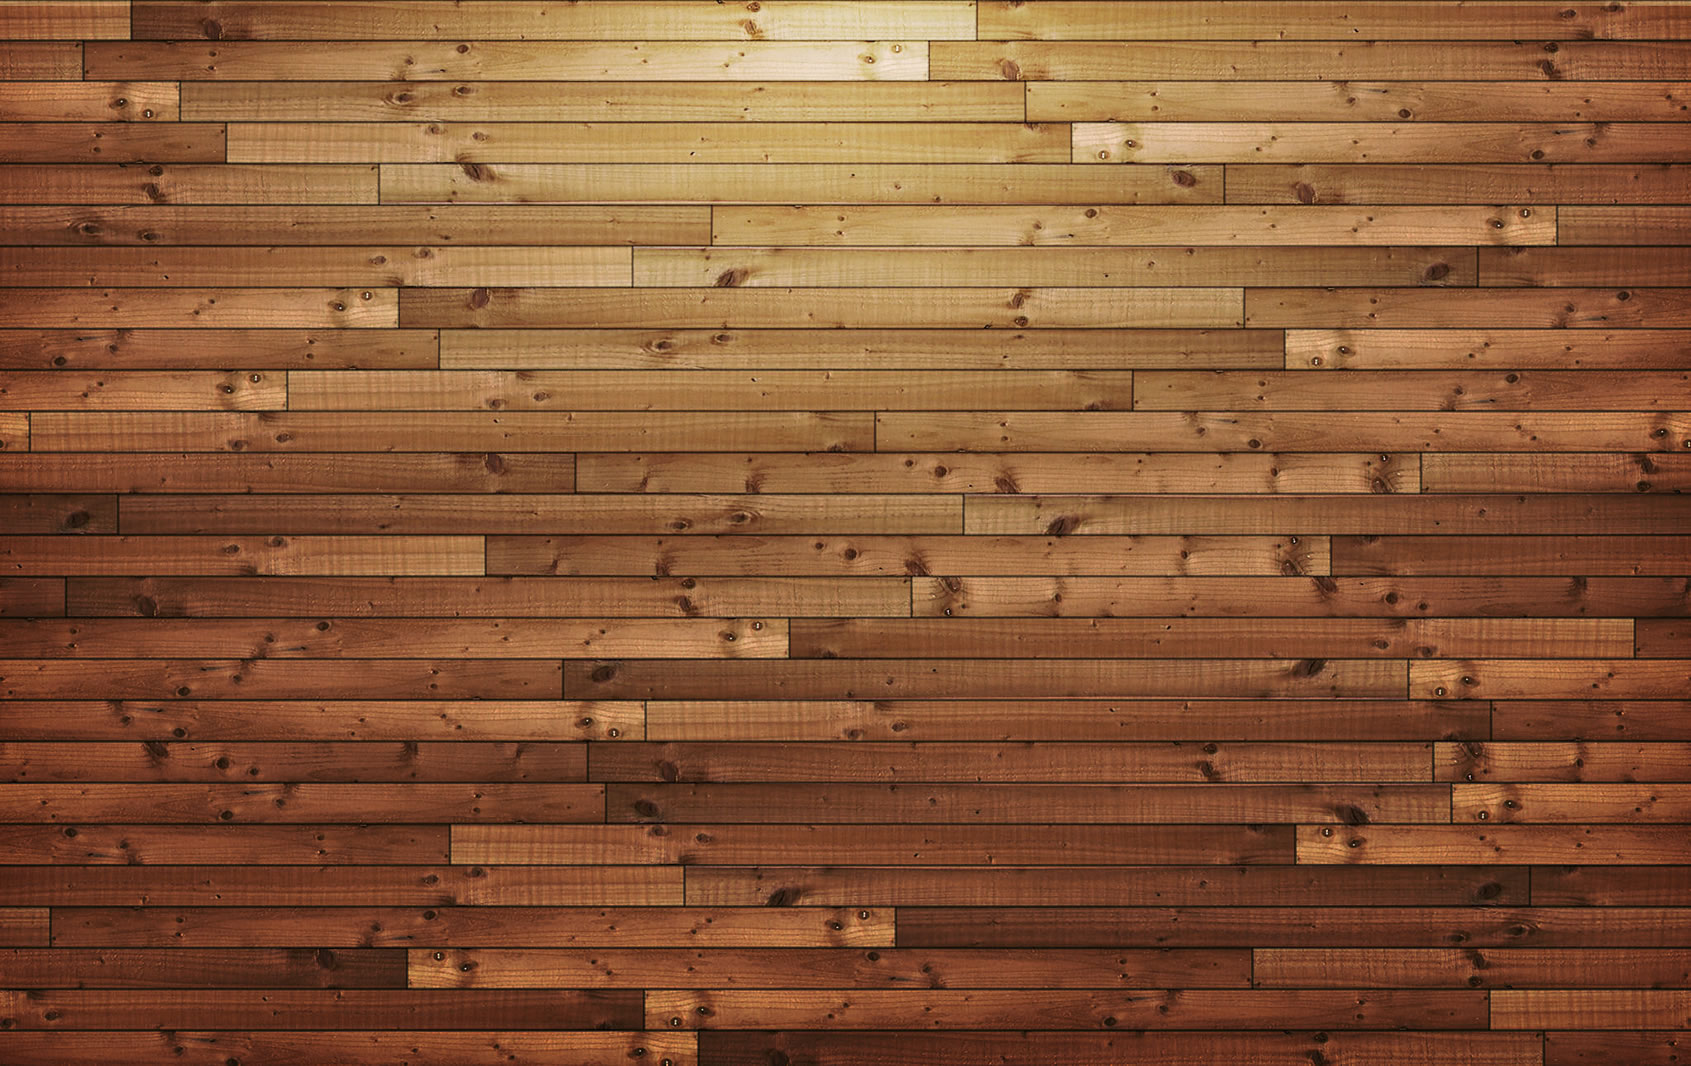 Decor Rustic White Wood Background With Displaying 19 Images For Rustic Barn  Wood Backgrounds 26